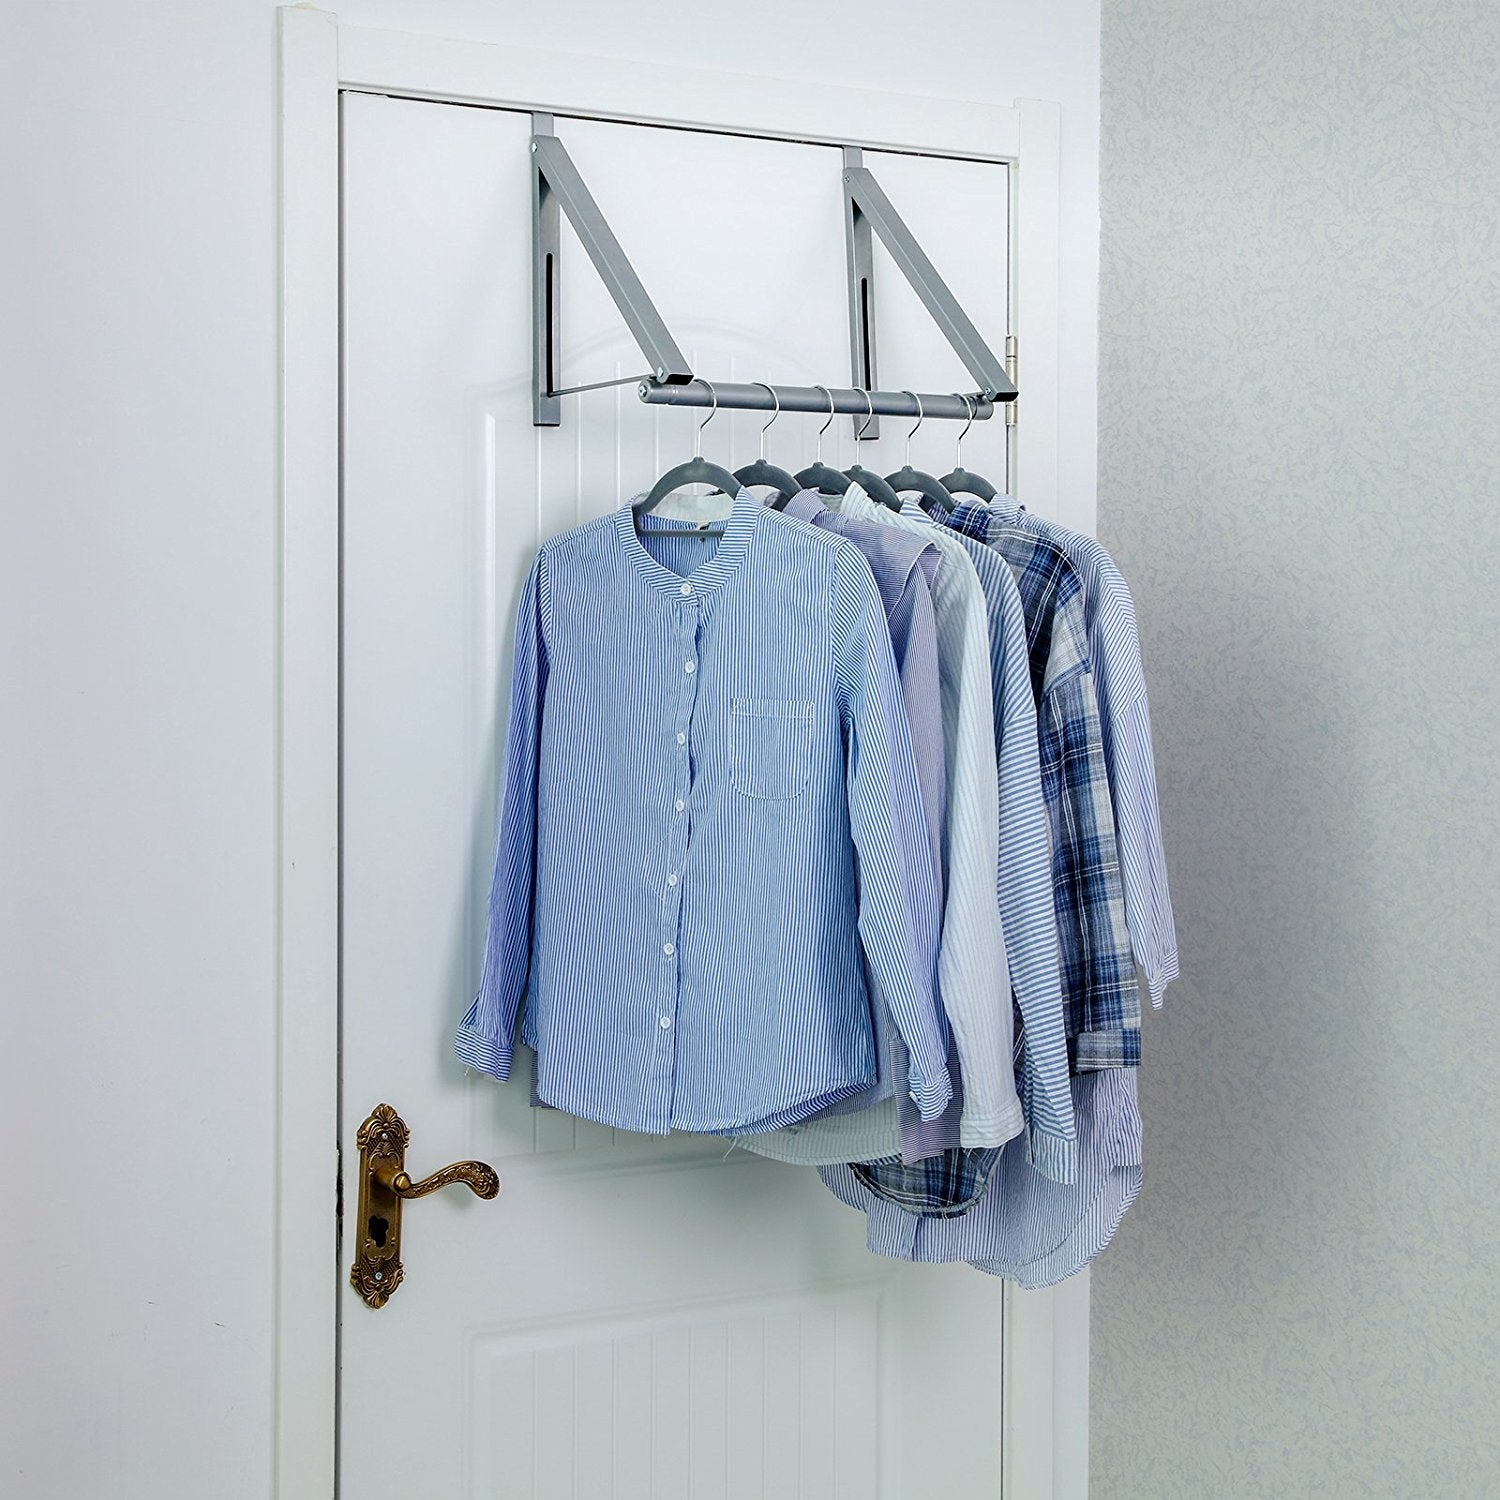 Songmics Over The Door Closet Rod Collapsible Clothes Hanger For